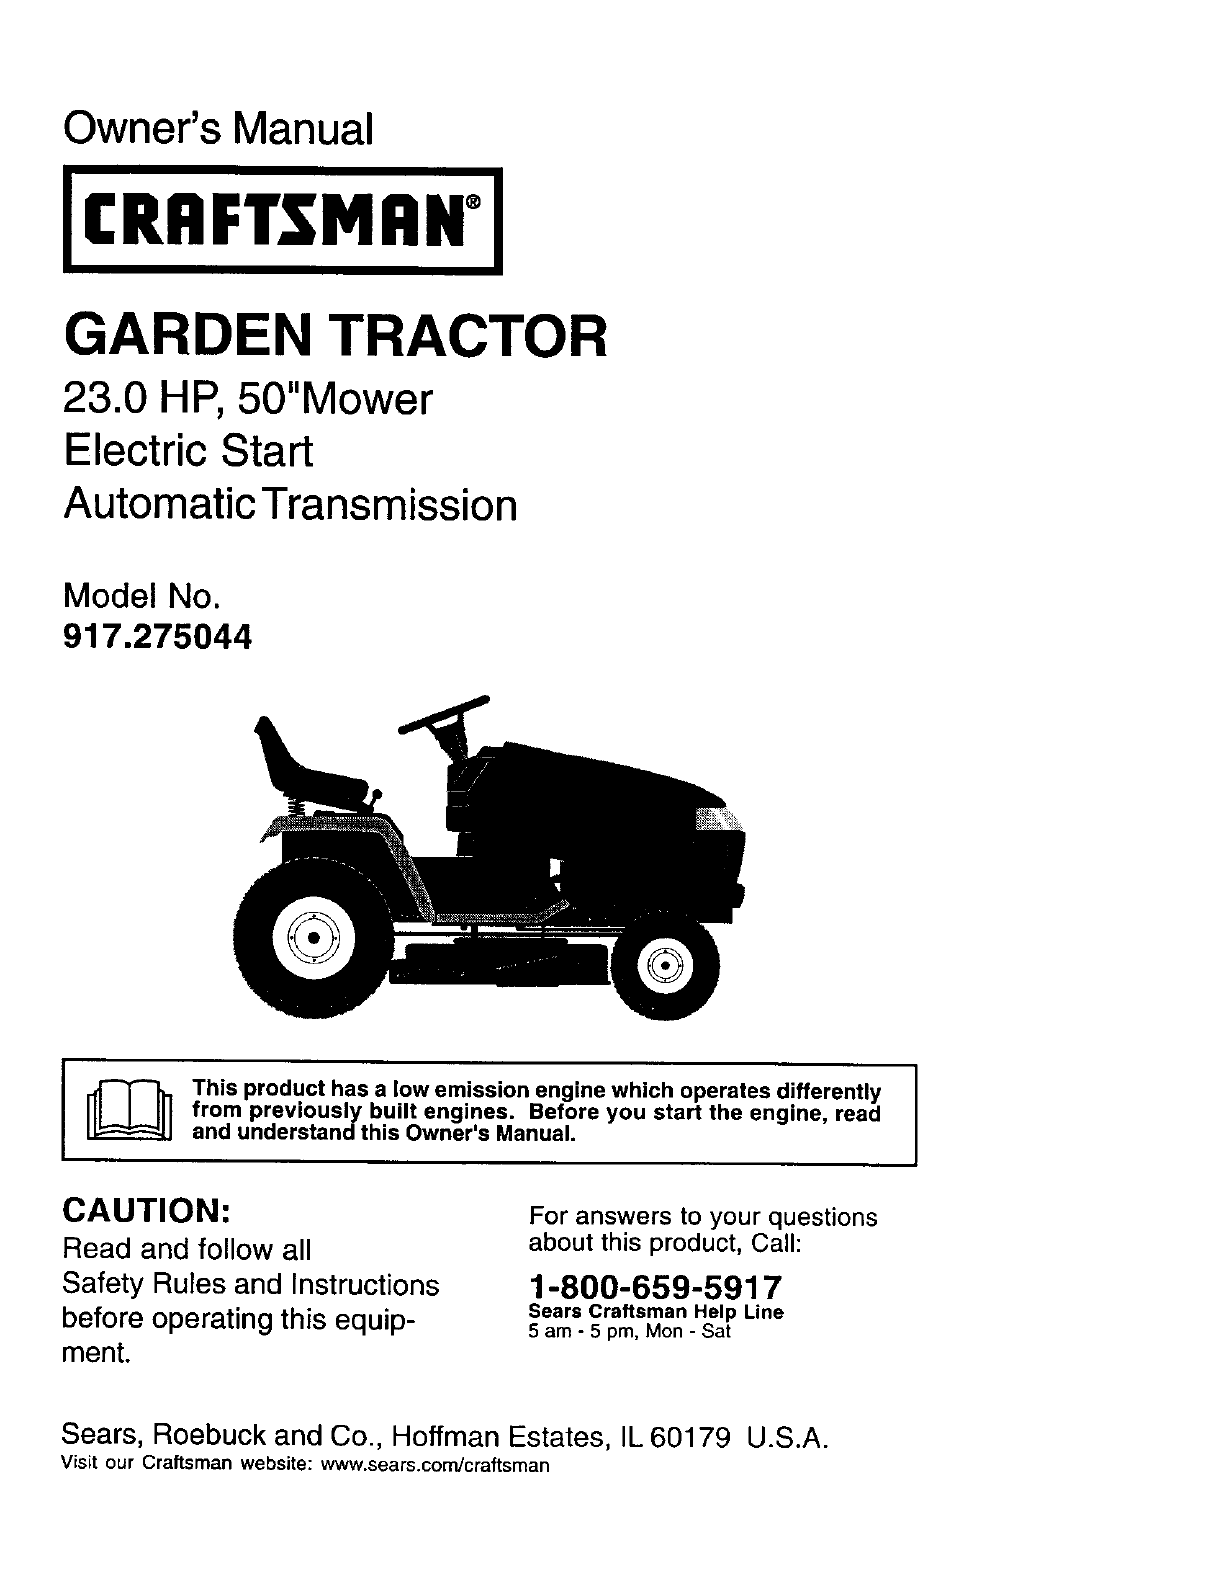 Craftsman 917275044 User Manual Lawn Tractor Manuals And Guides L0203052 Mower Electrical Schematics